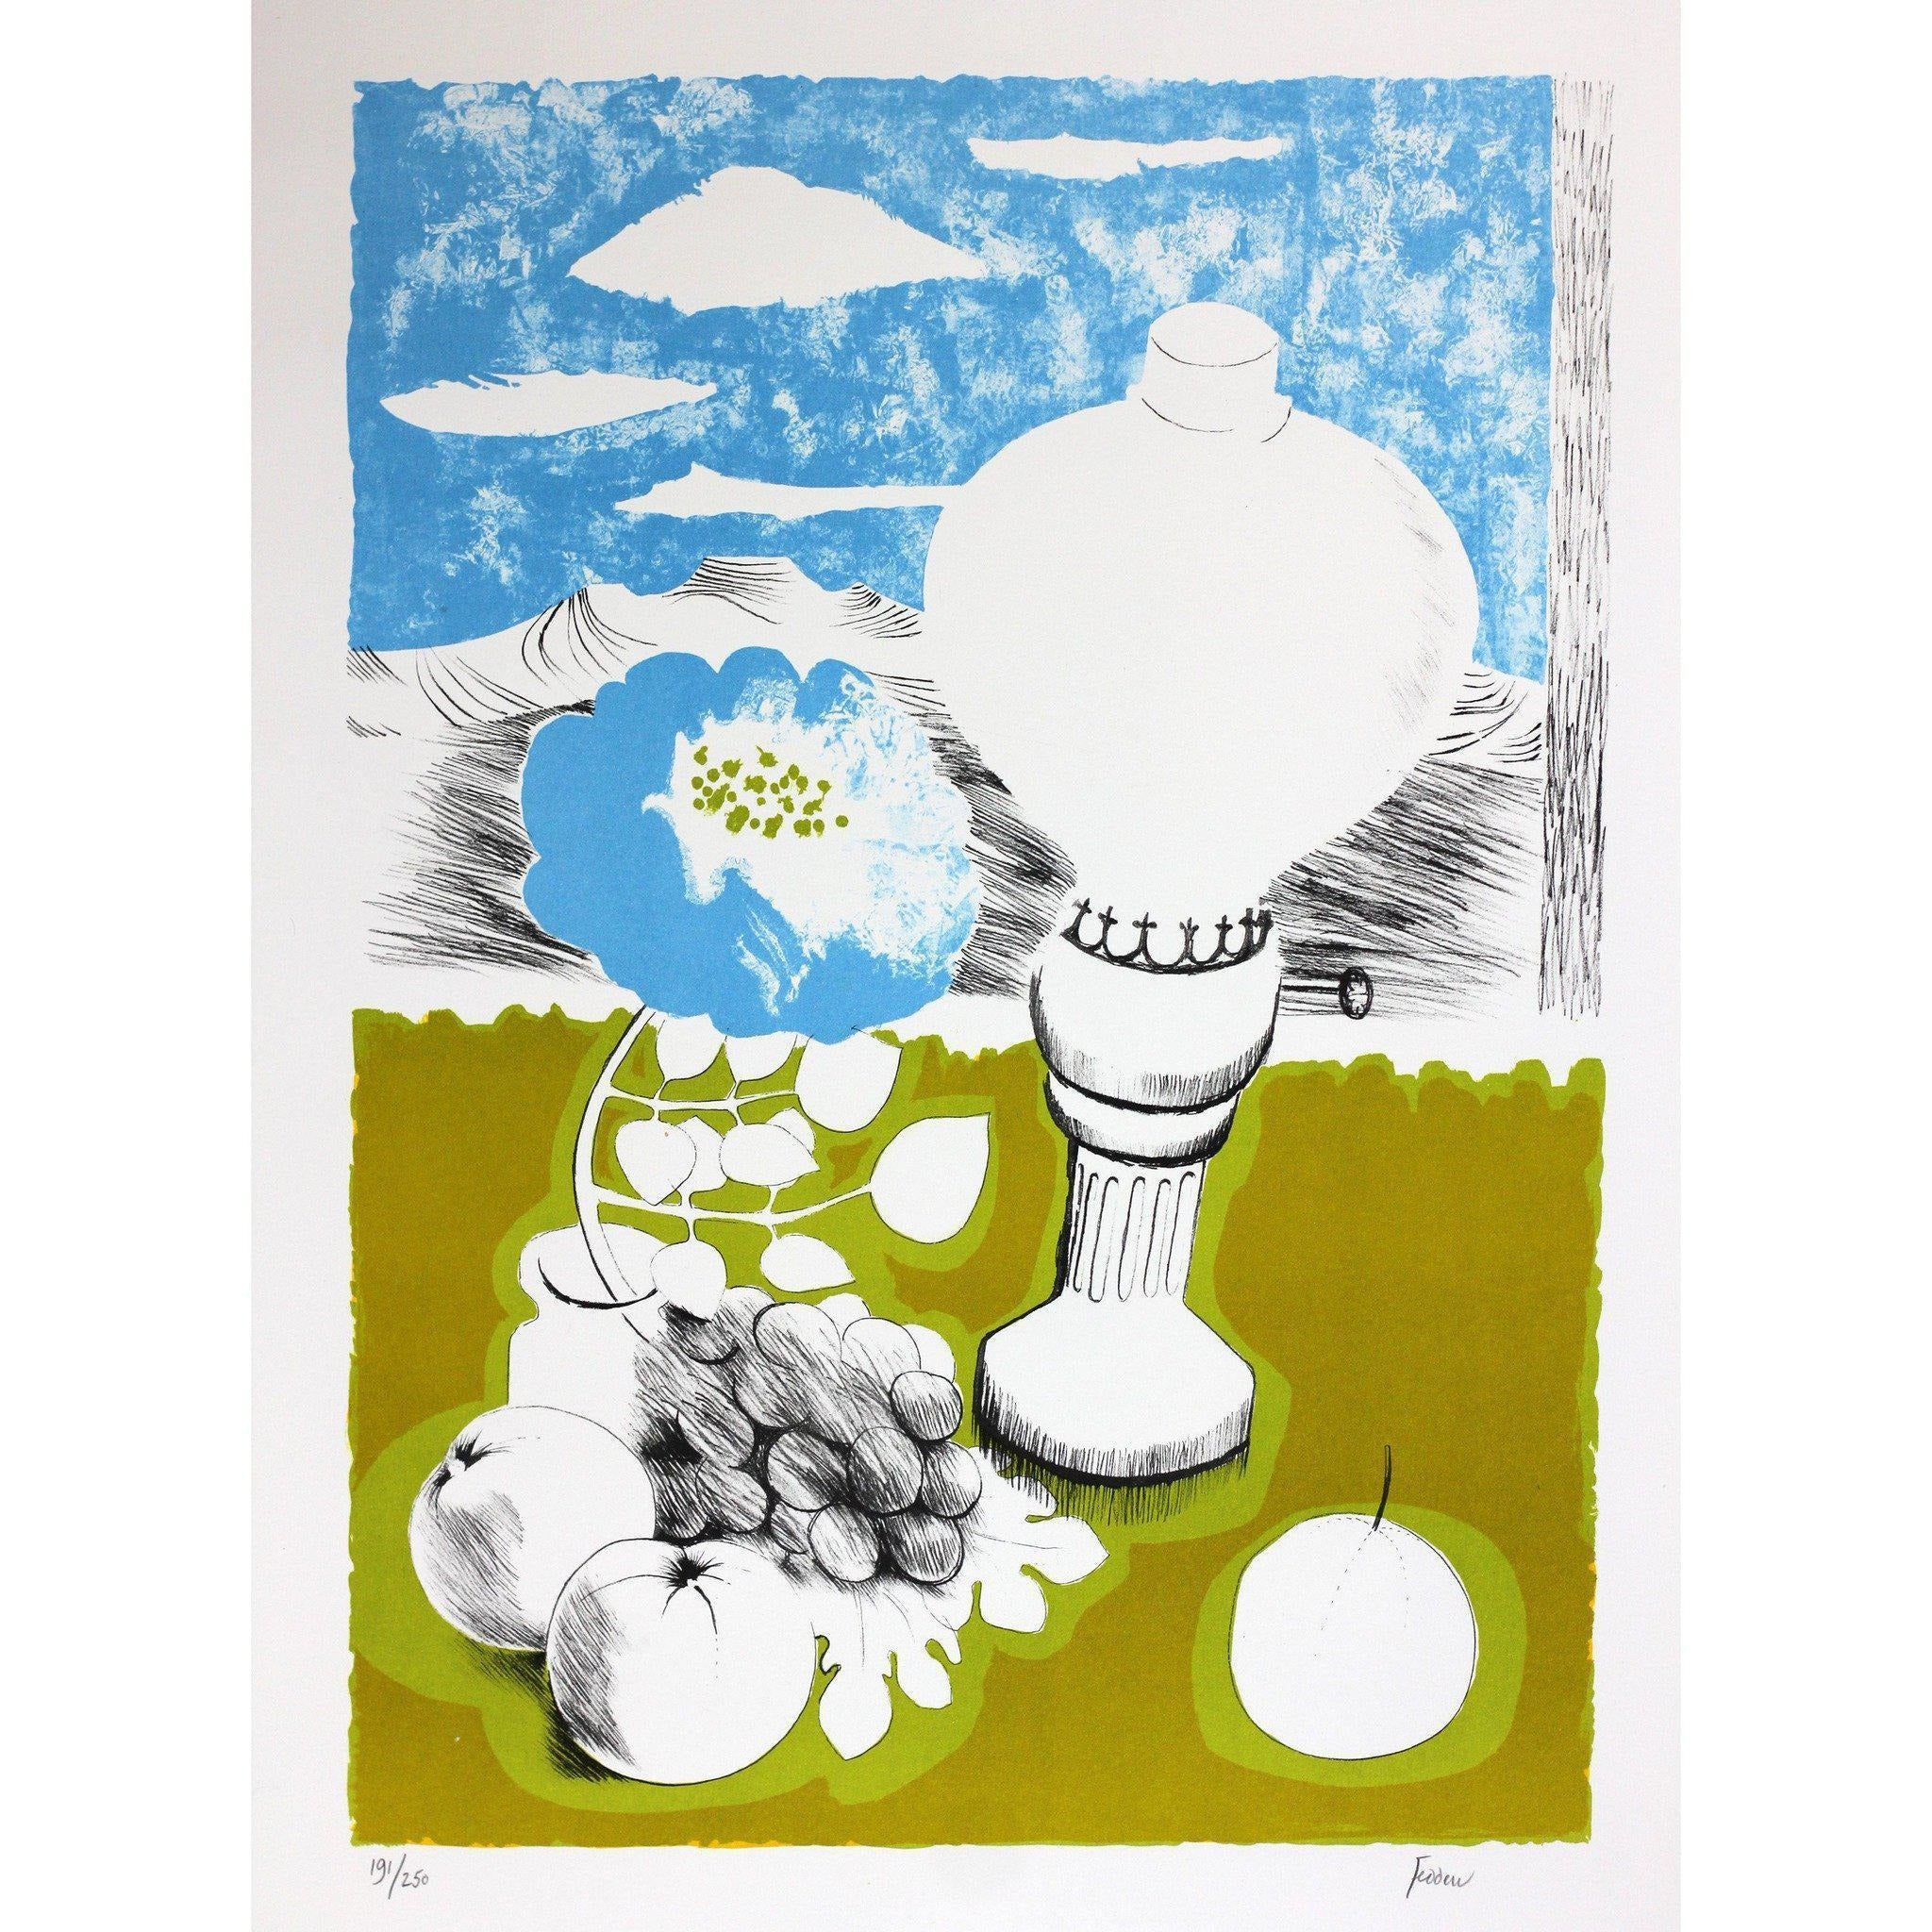 Mary Fedden Signed Ltd Ed Print - The Lamp